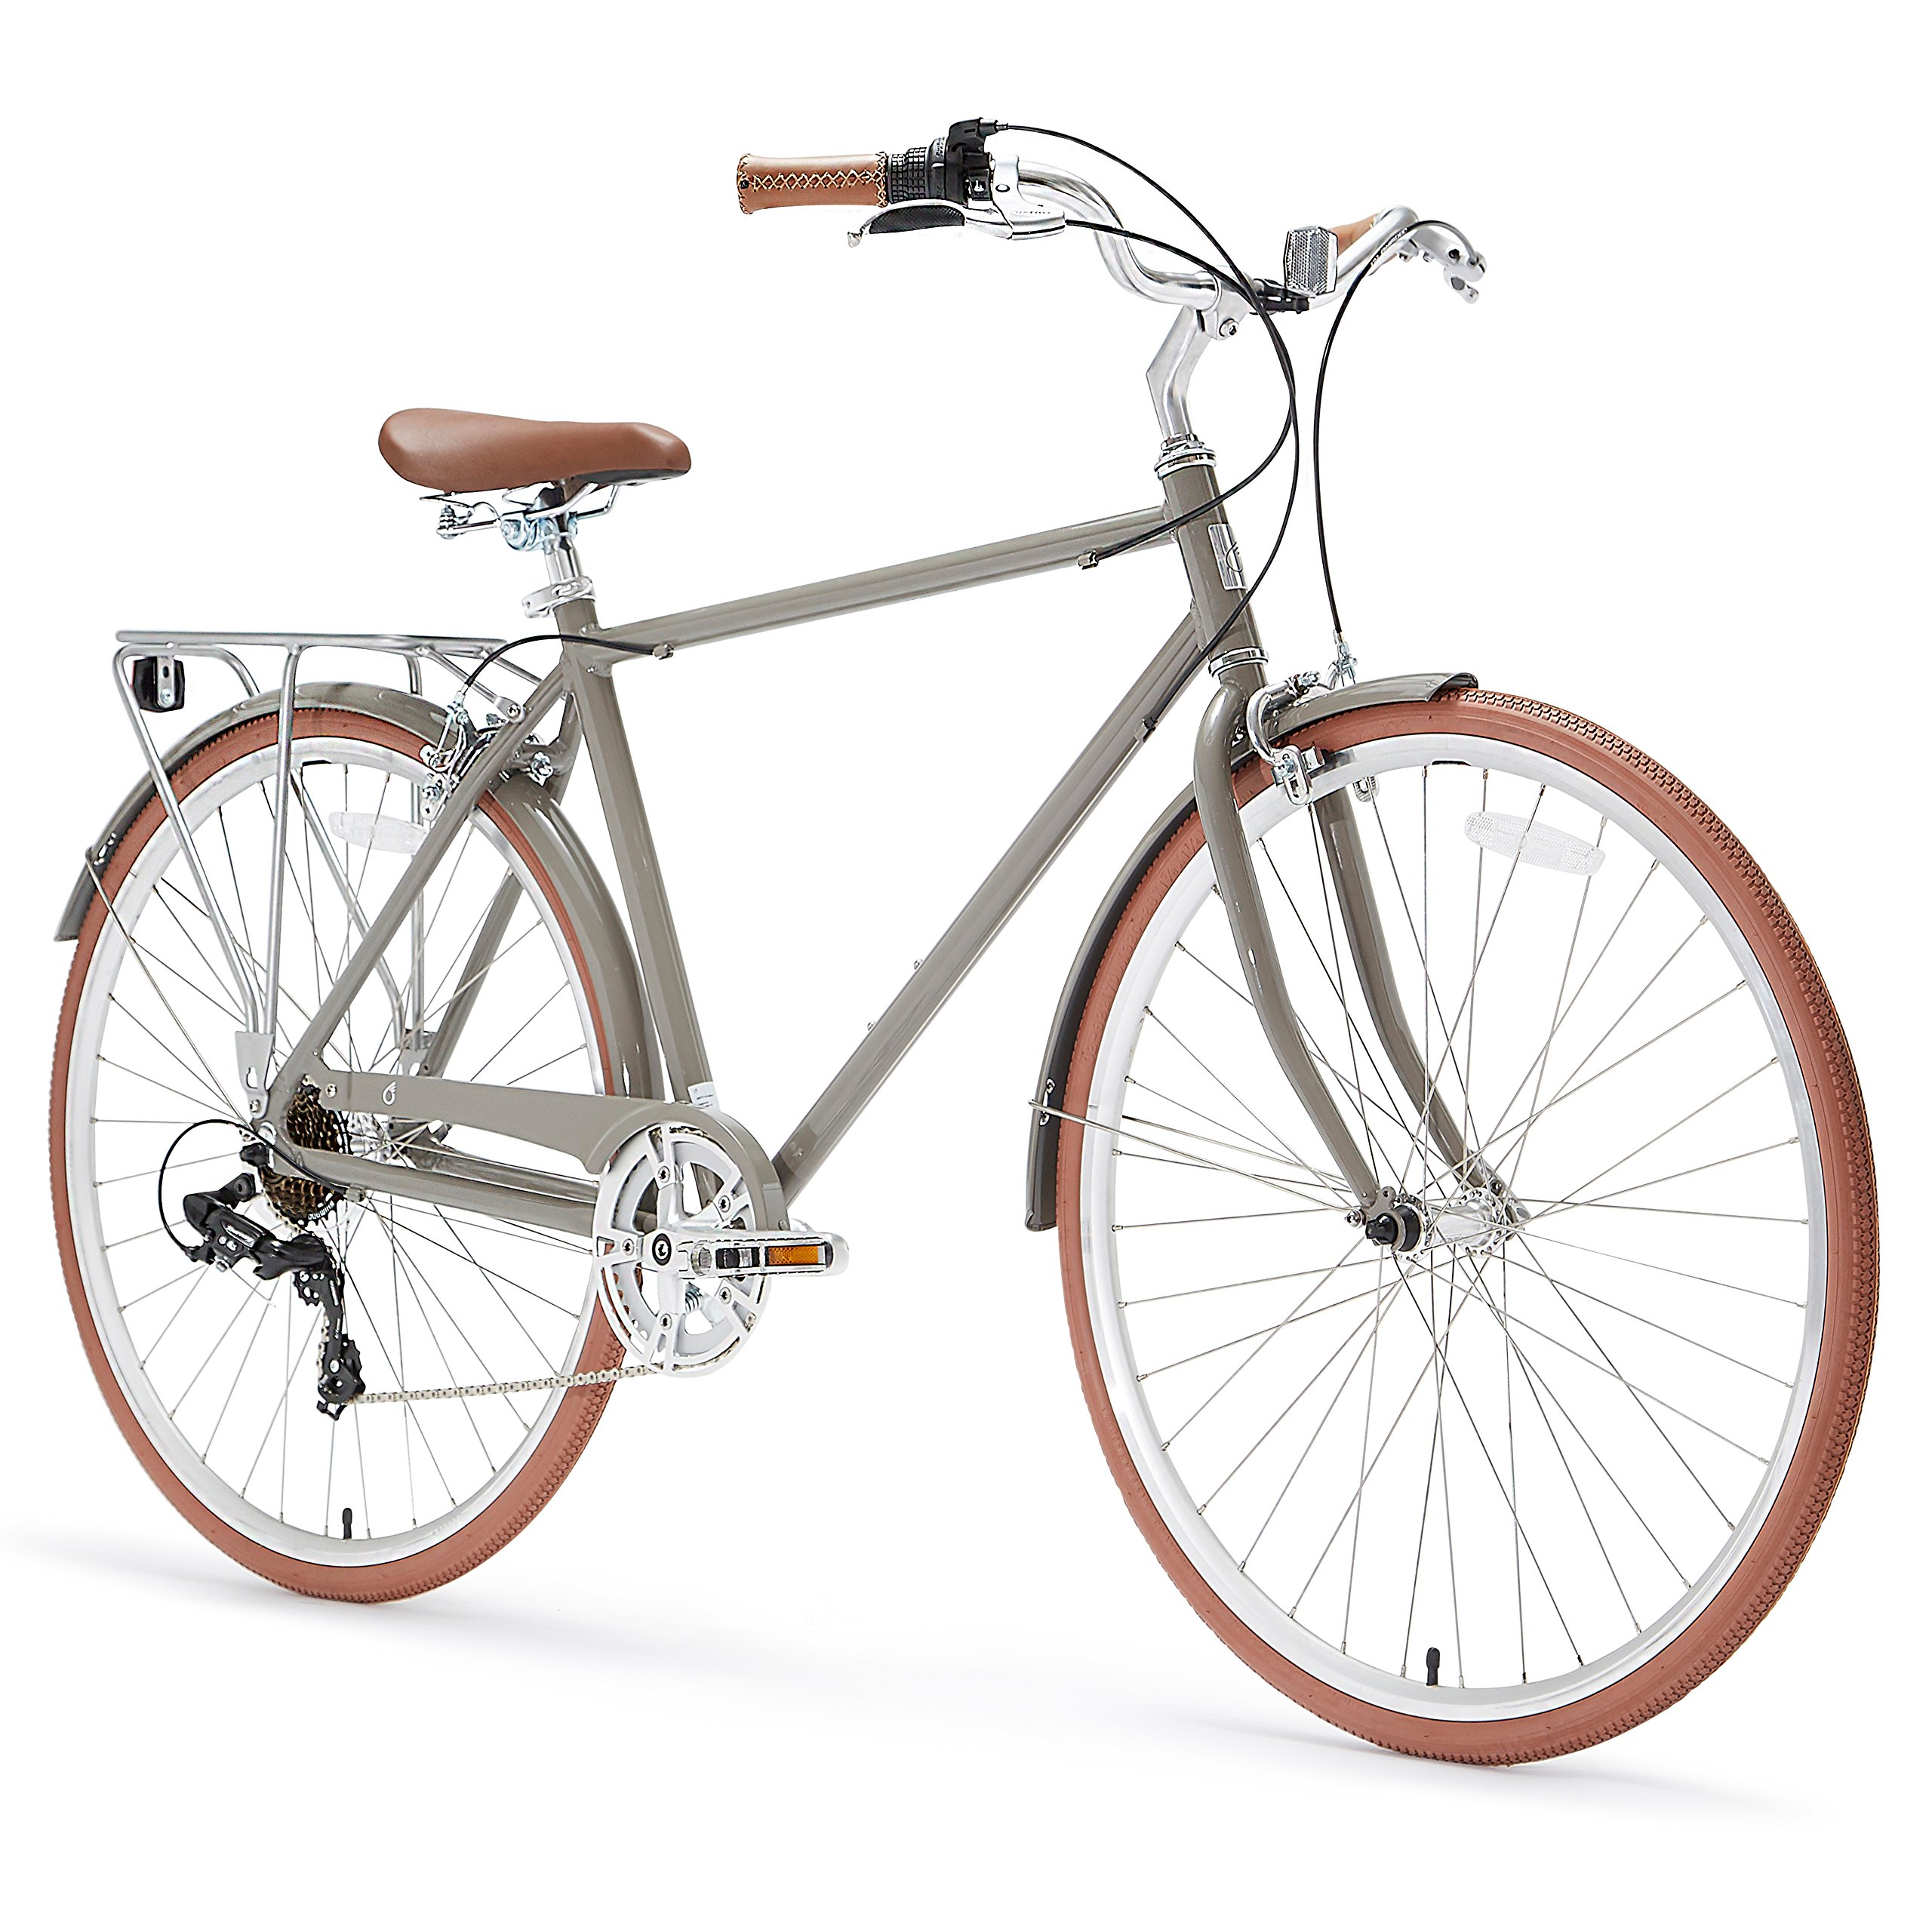 sixthreezero Ride in the Park Men's 7-Speed City Bicycle, 20-Inch Frame/700C Wheels, Grey